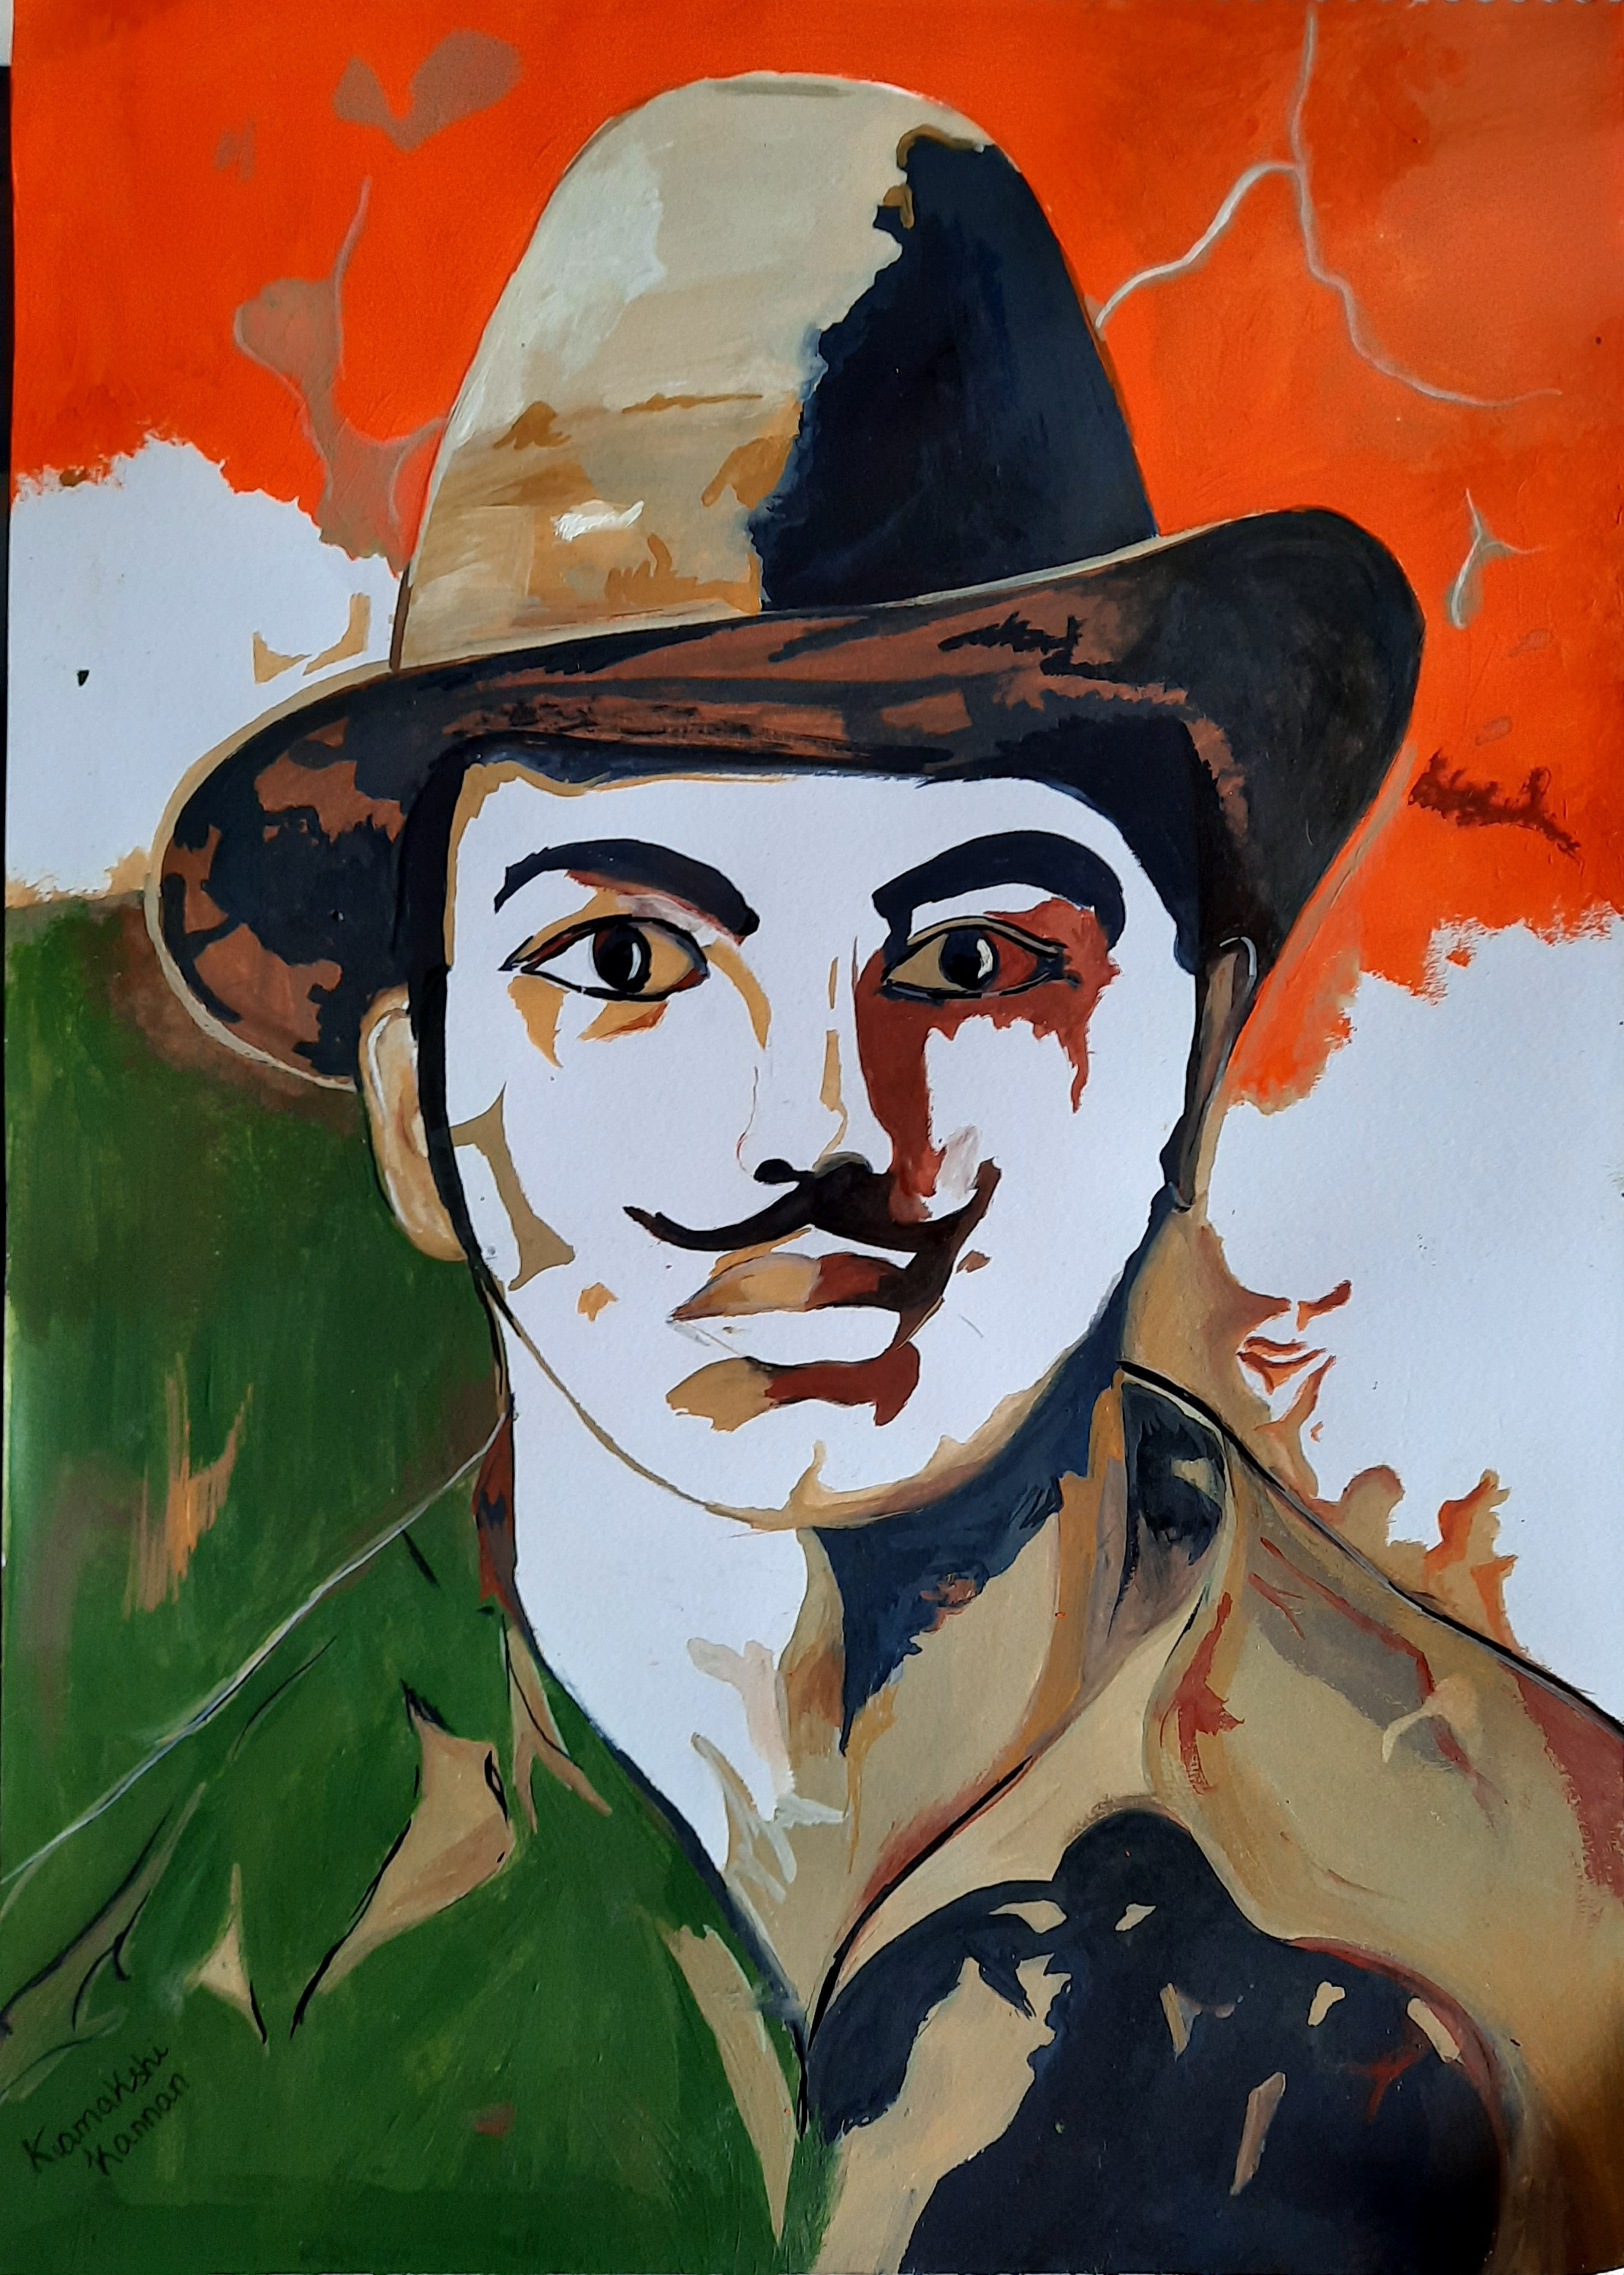 Kamakshi's Tribute To Our Heroes